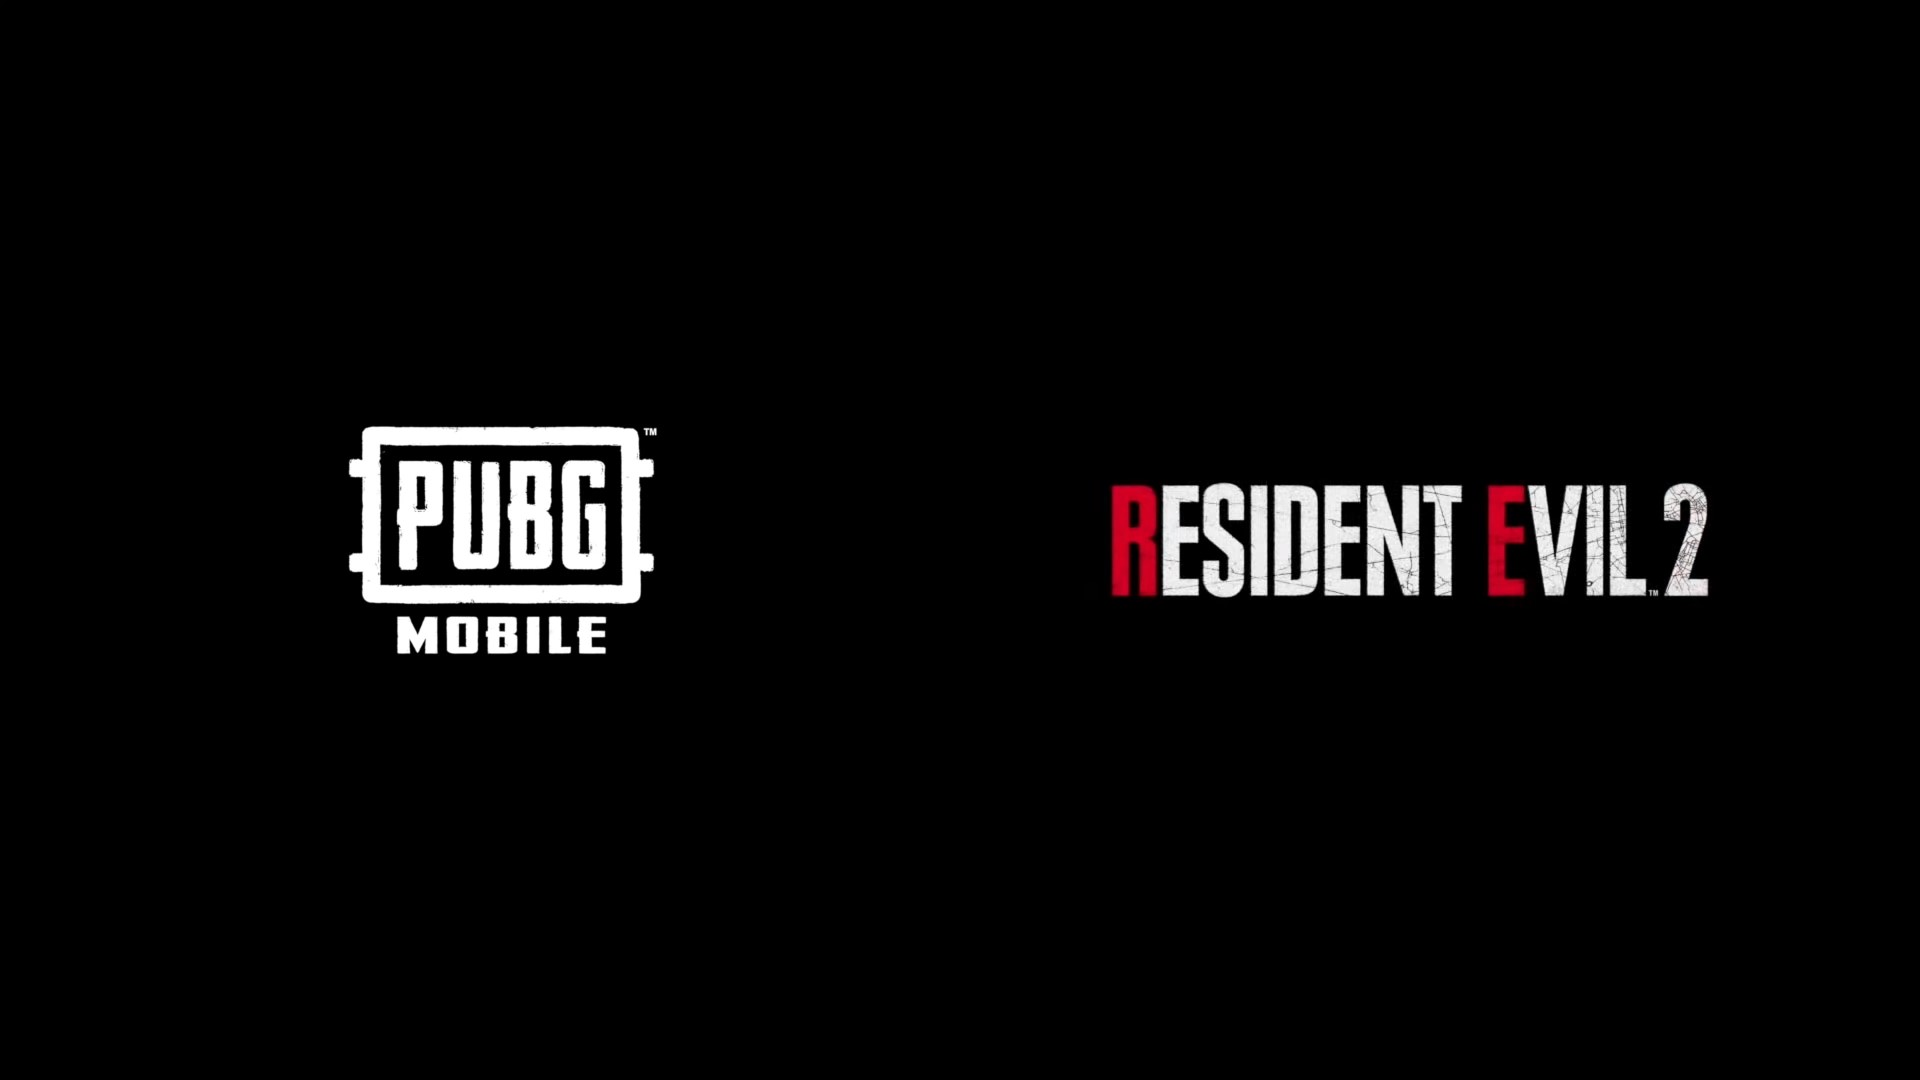 Pubg Mobile 0 11 0 Beta Brings Resident Evil 2 Zombies To An